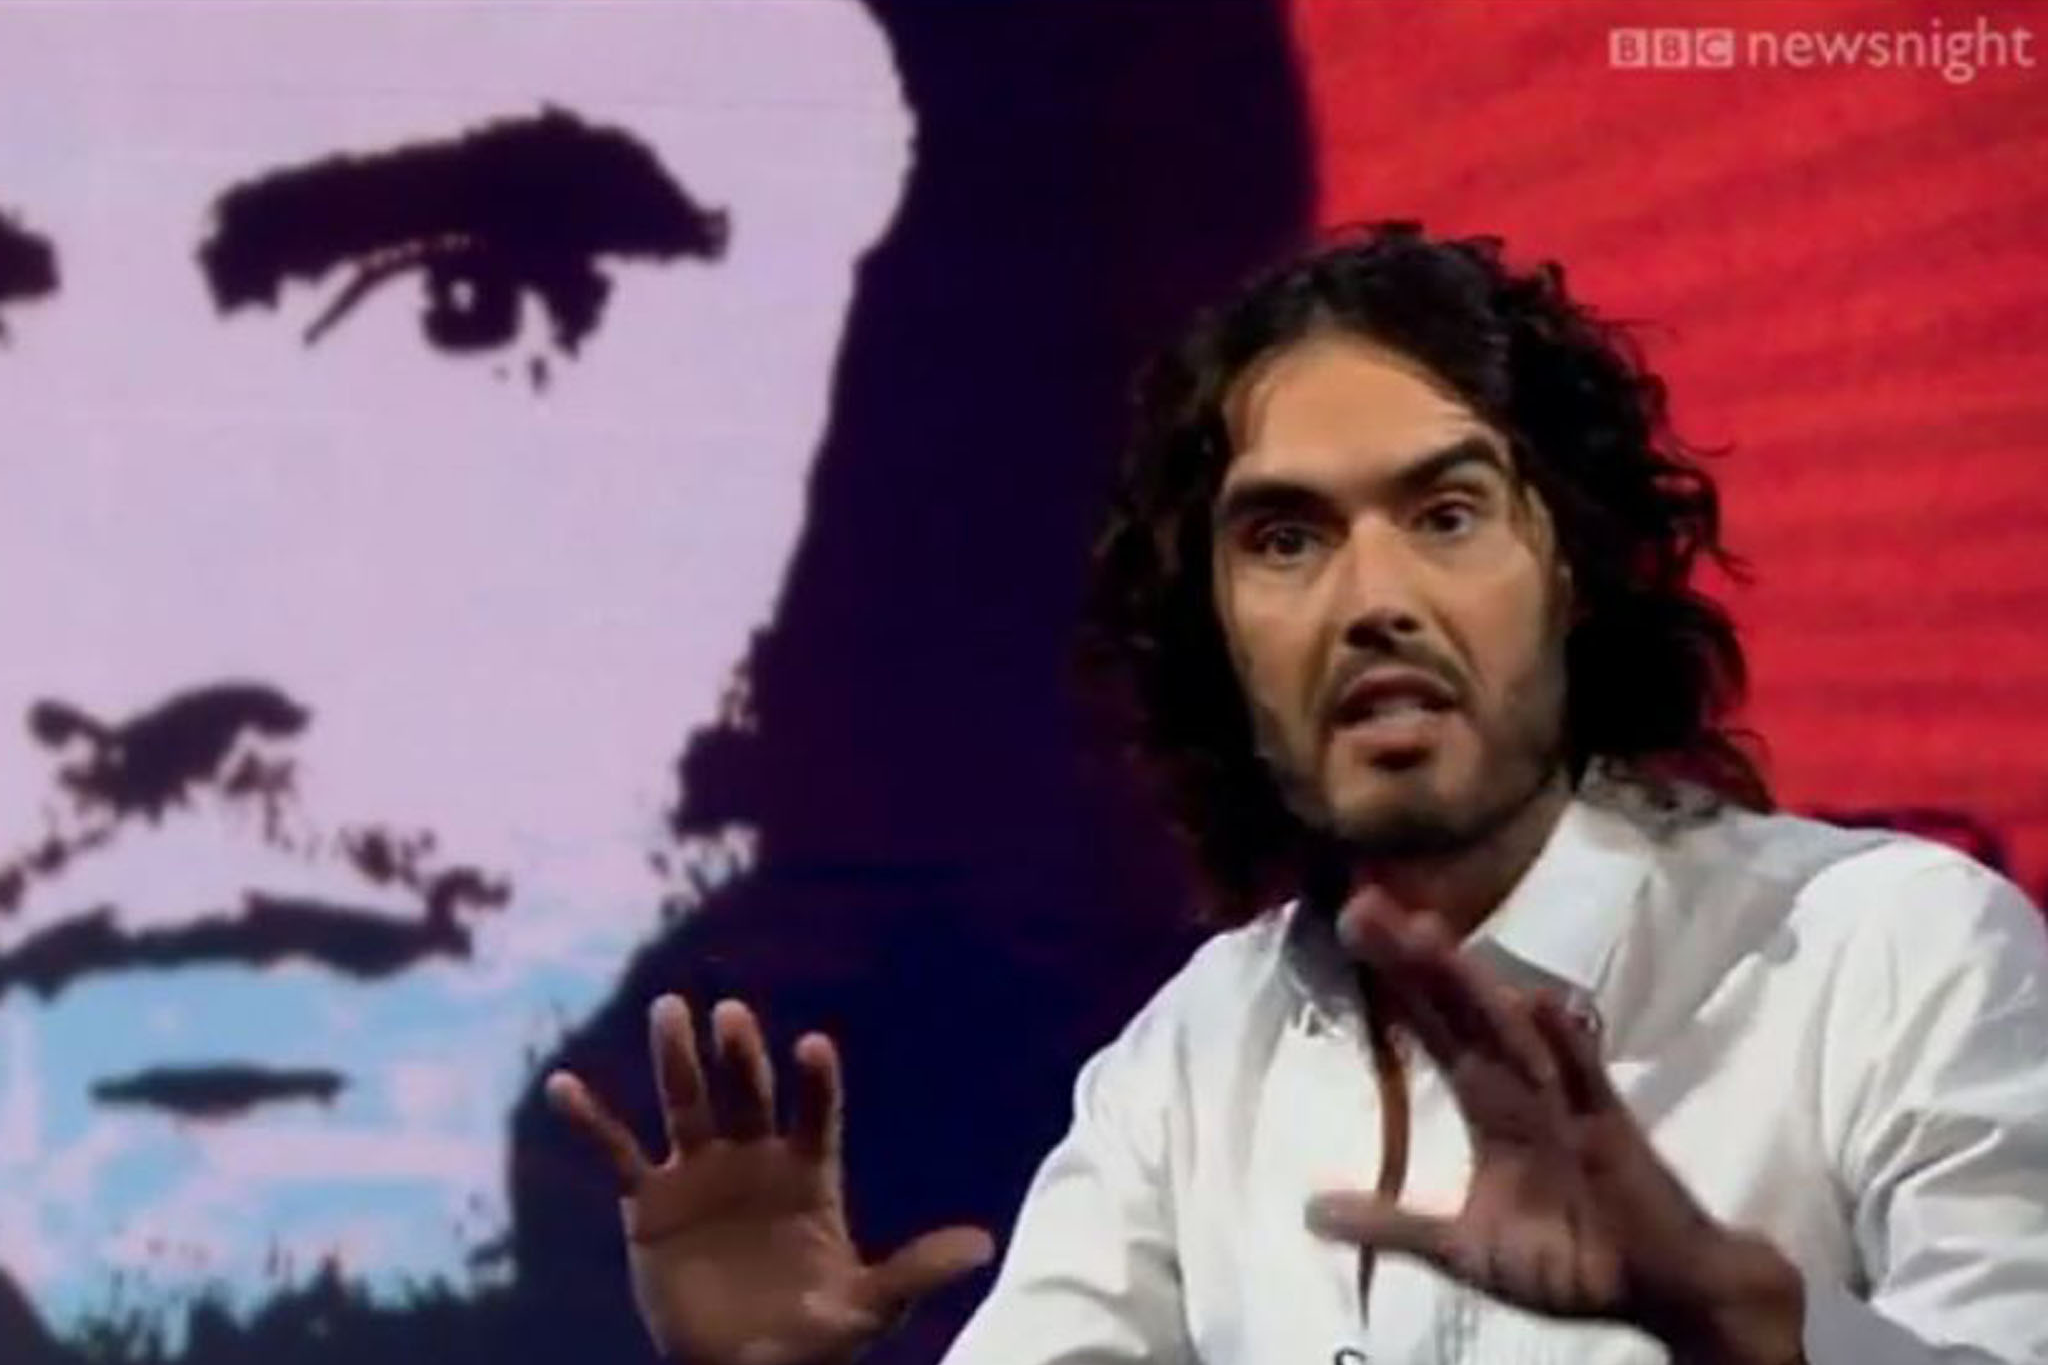 Russell Brand: Another \'Newsnight\' interview, another row, as he ...